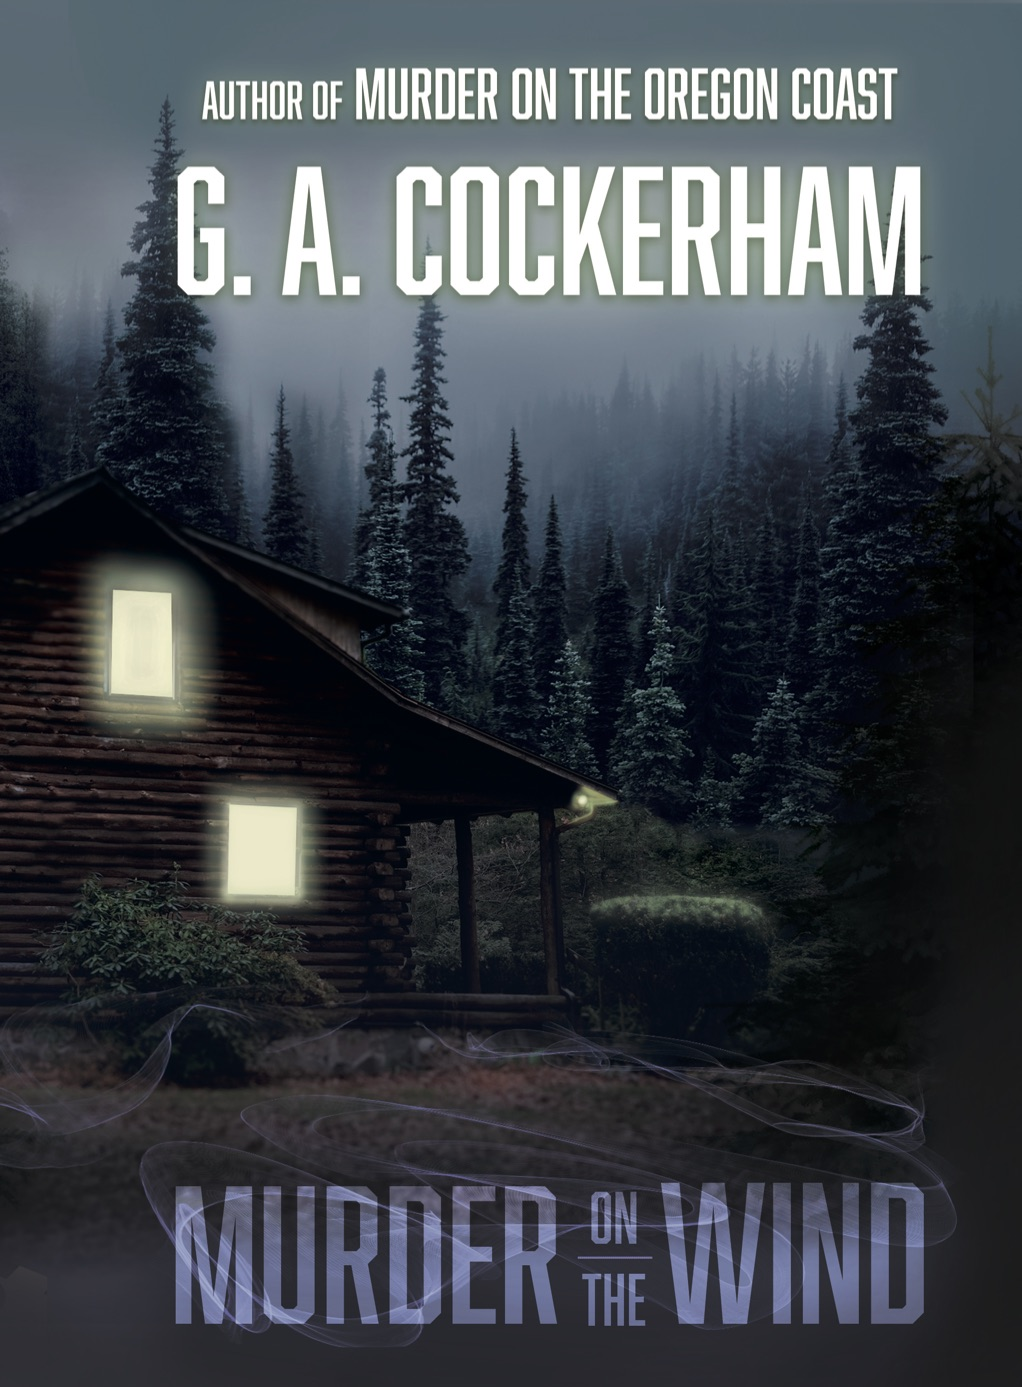 Murder On The Wind Front_Cover-1 copy 3